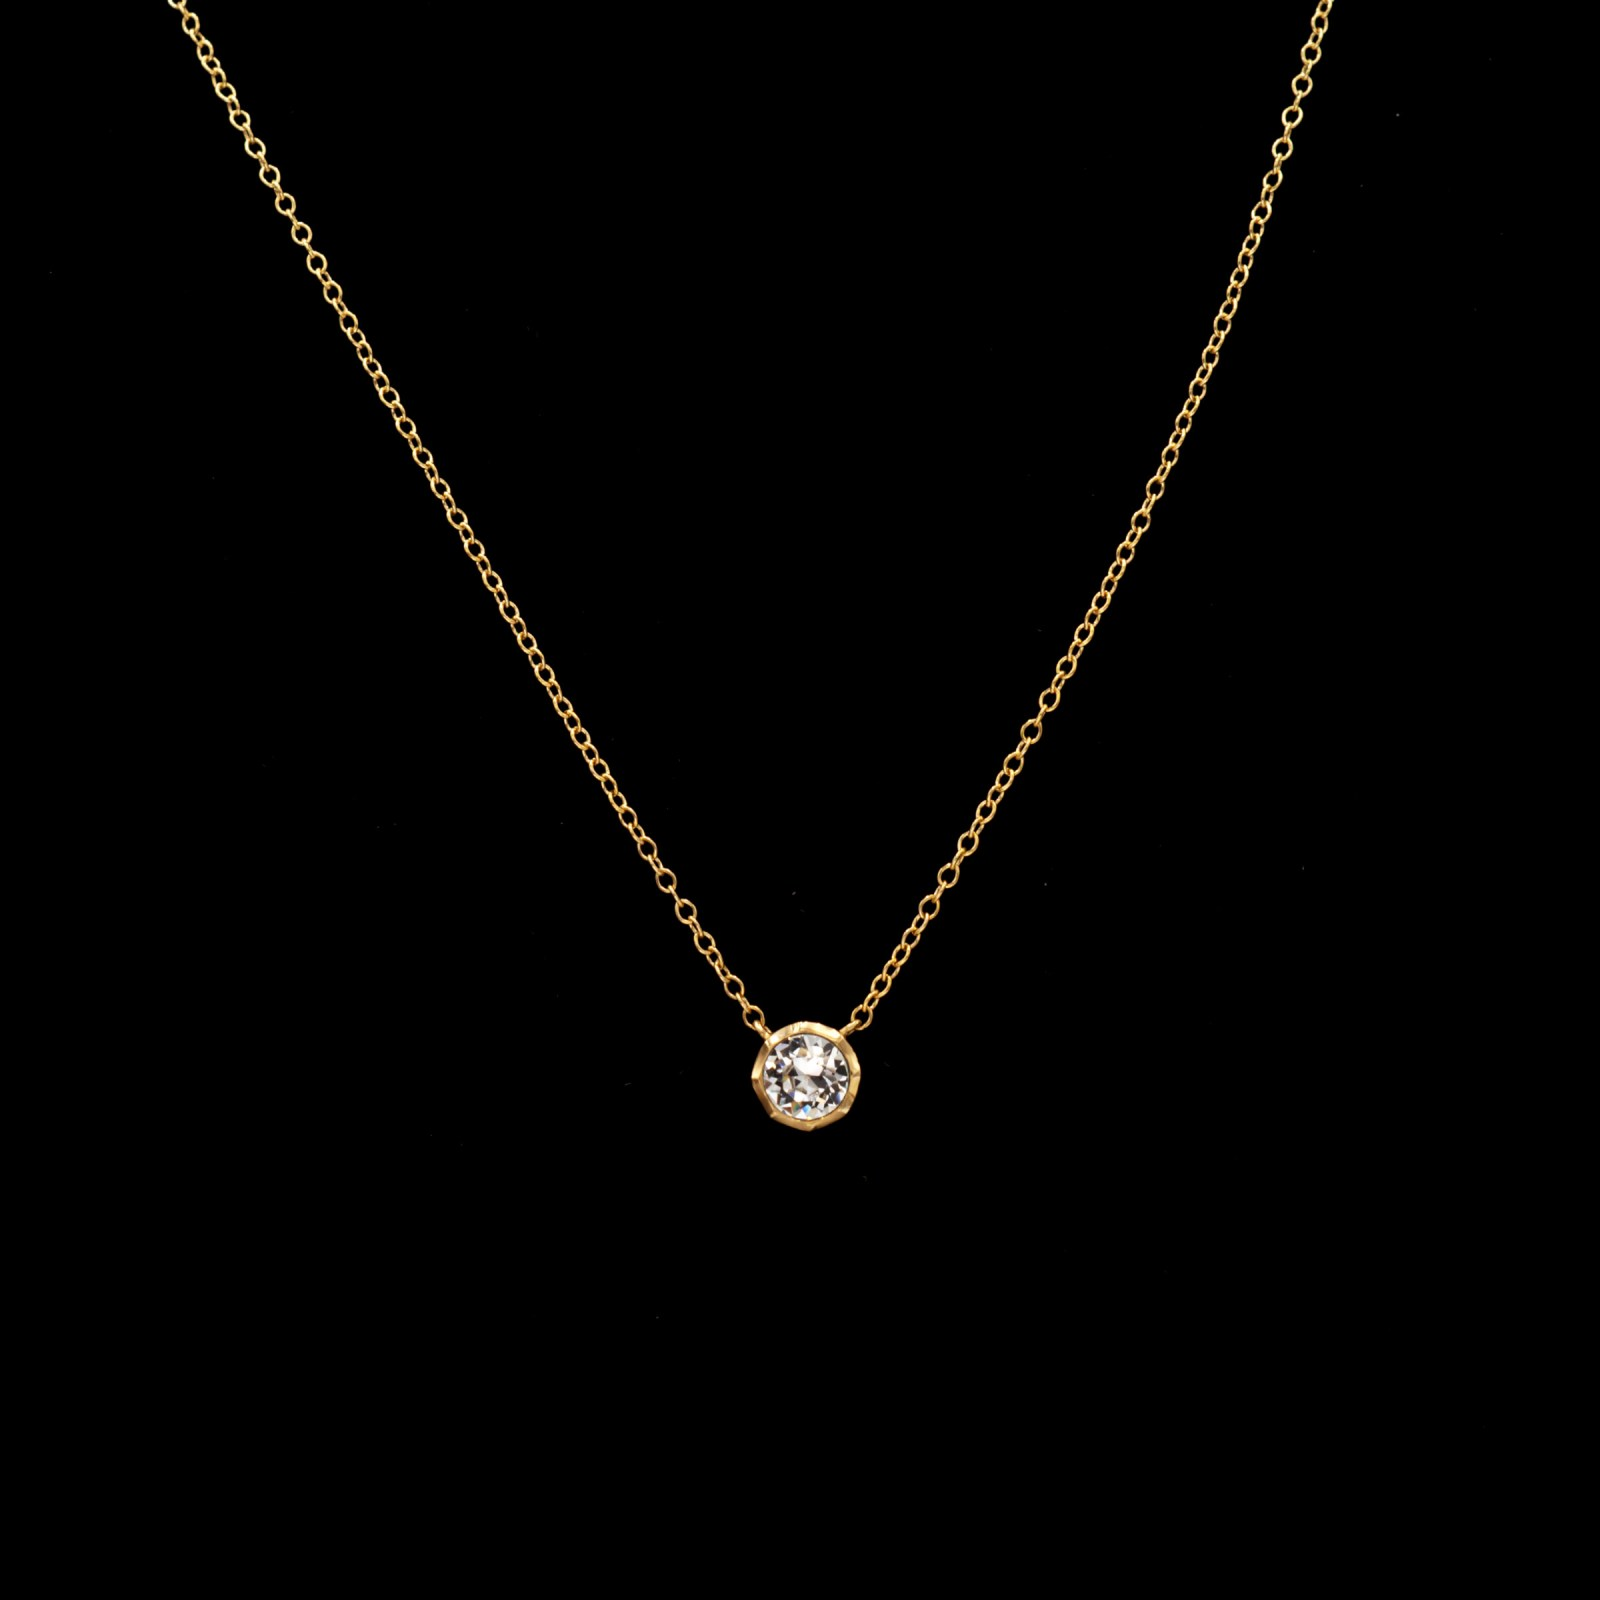 Revival Paste 14k Gold Small Solitaire Necklace